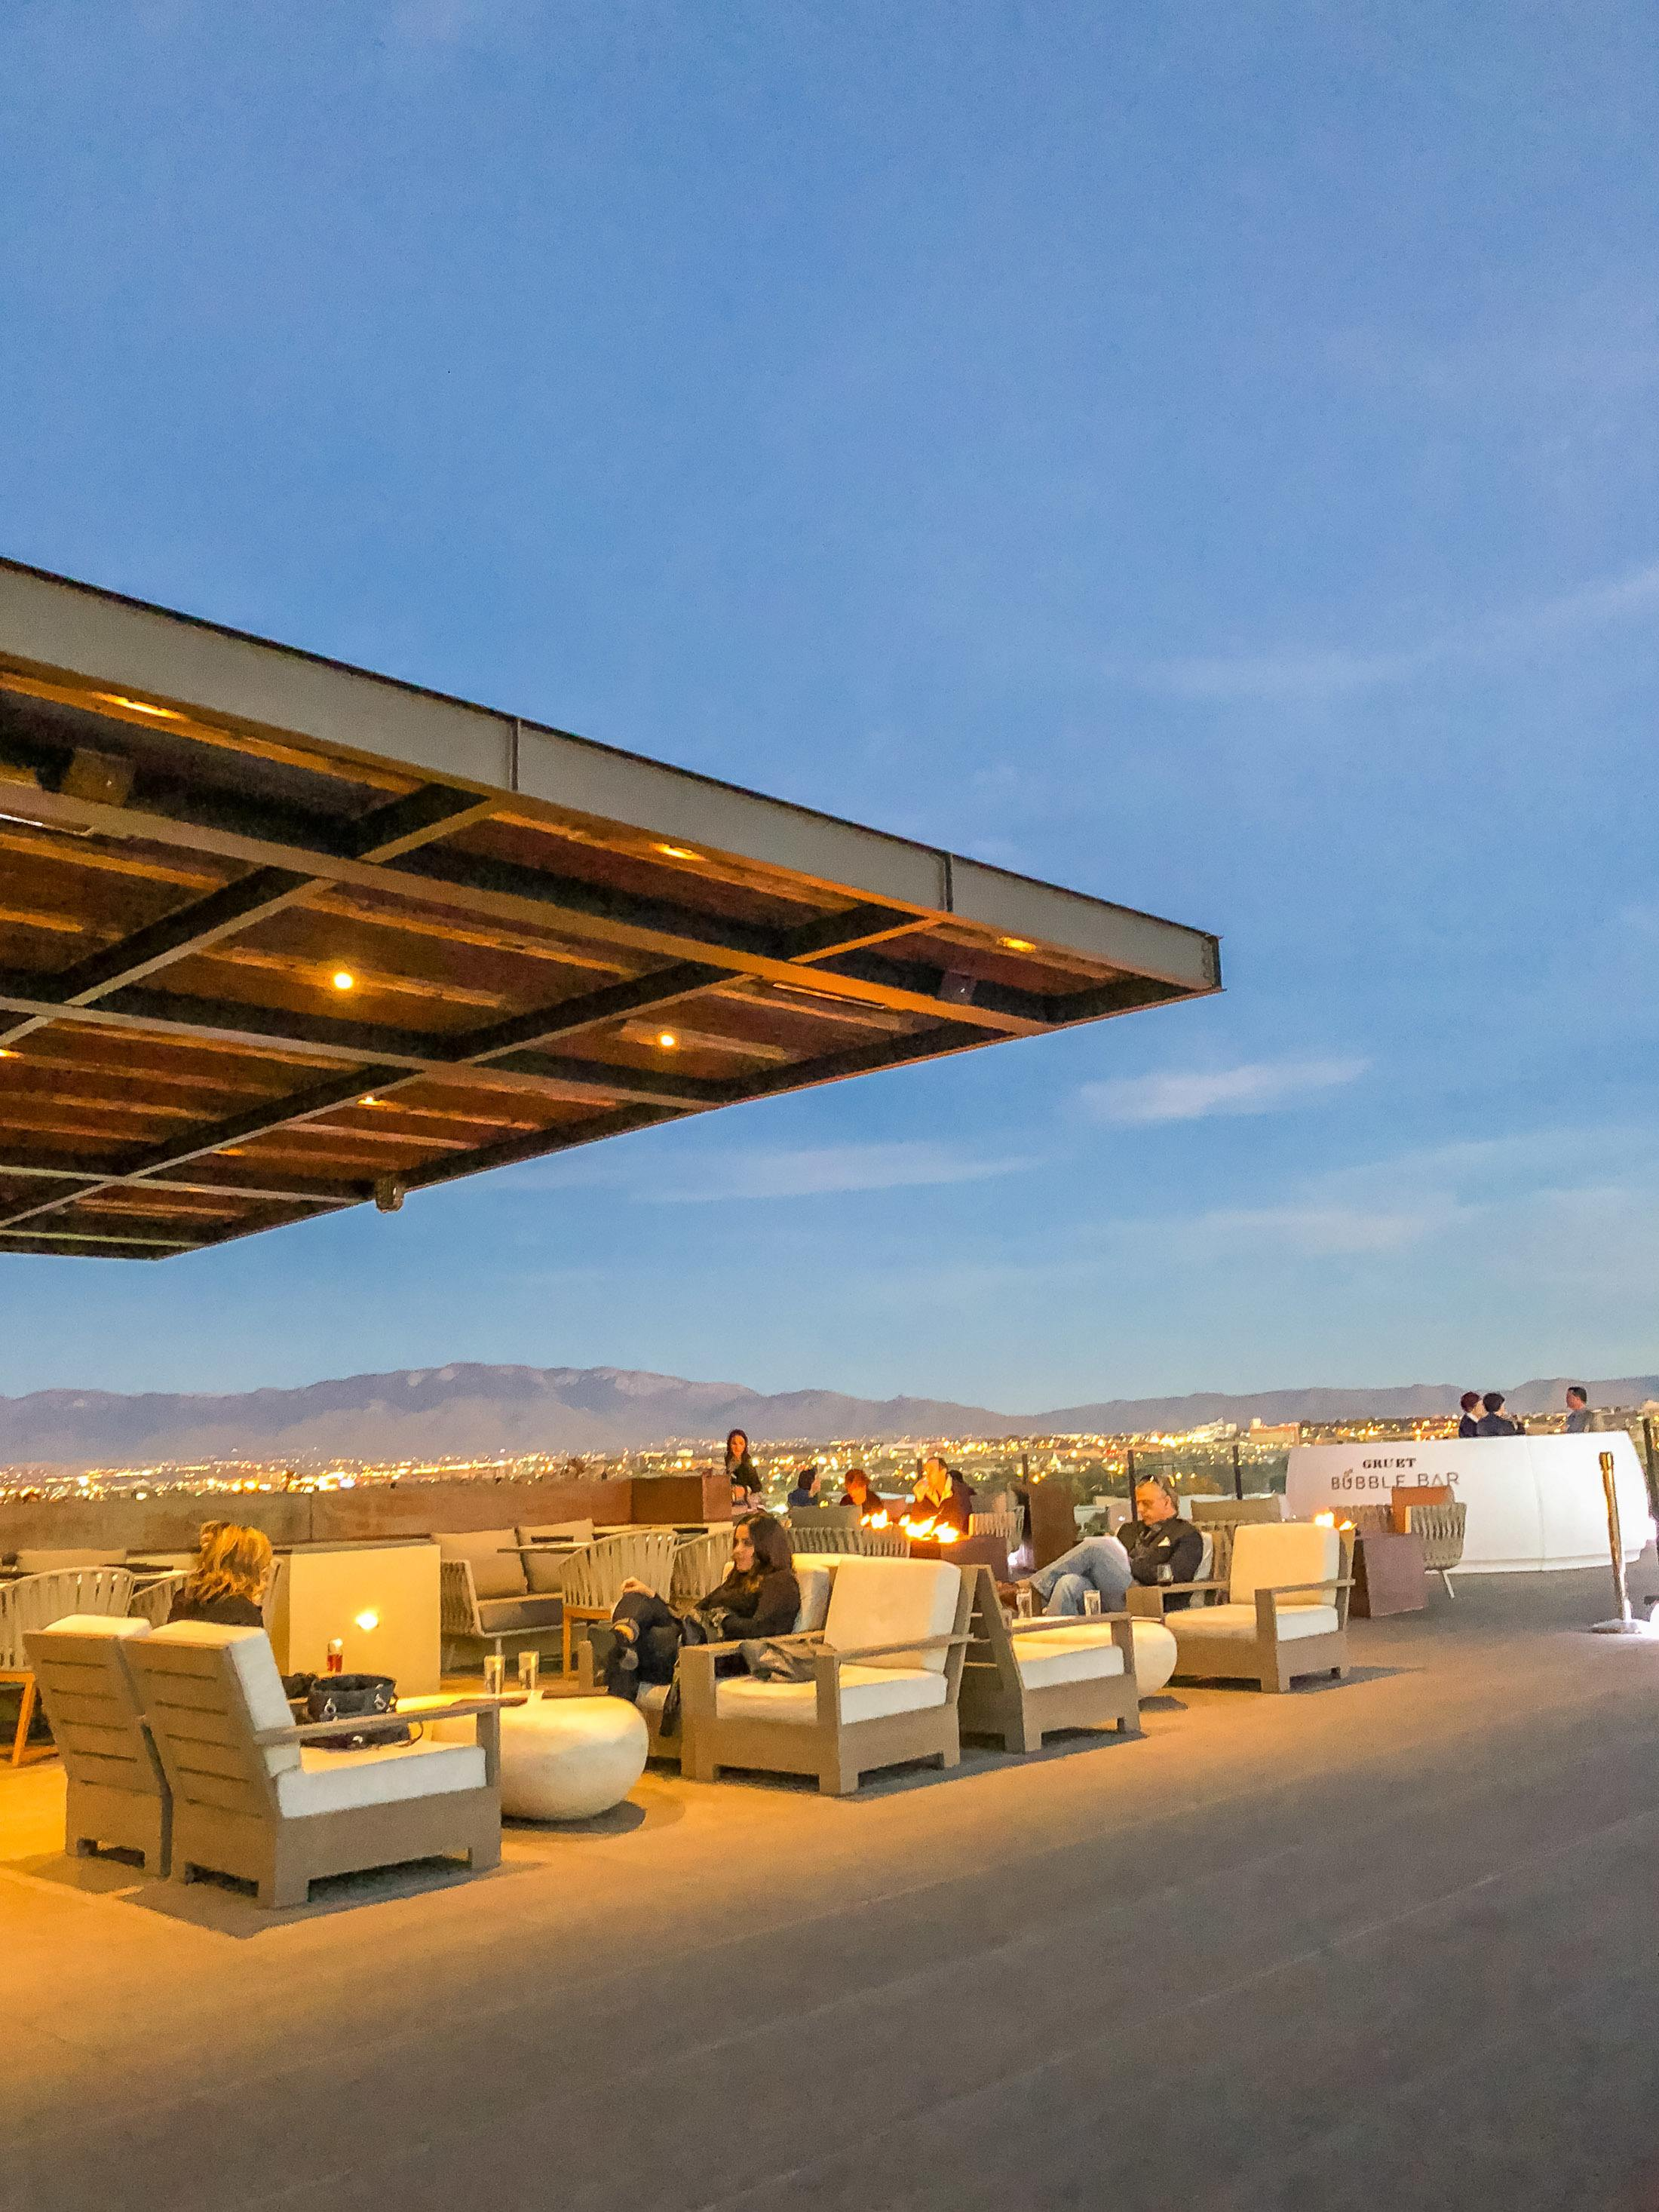 The rooftop restaurant is popular at sunset at Hotel Chaco in Albuquerque. Note the Sandia mountains in the background!